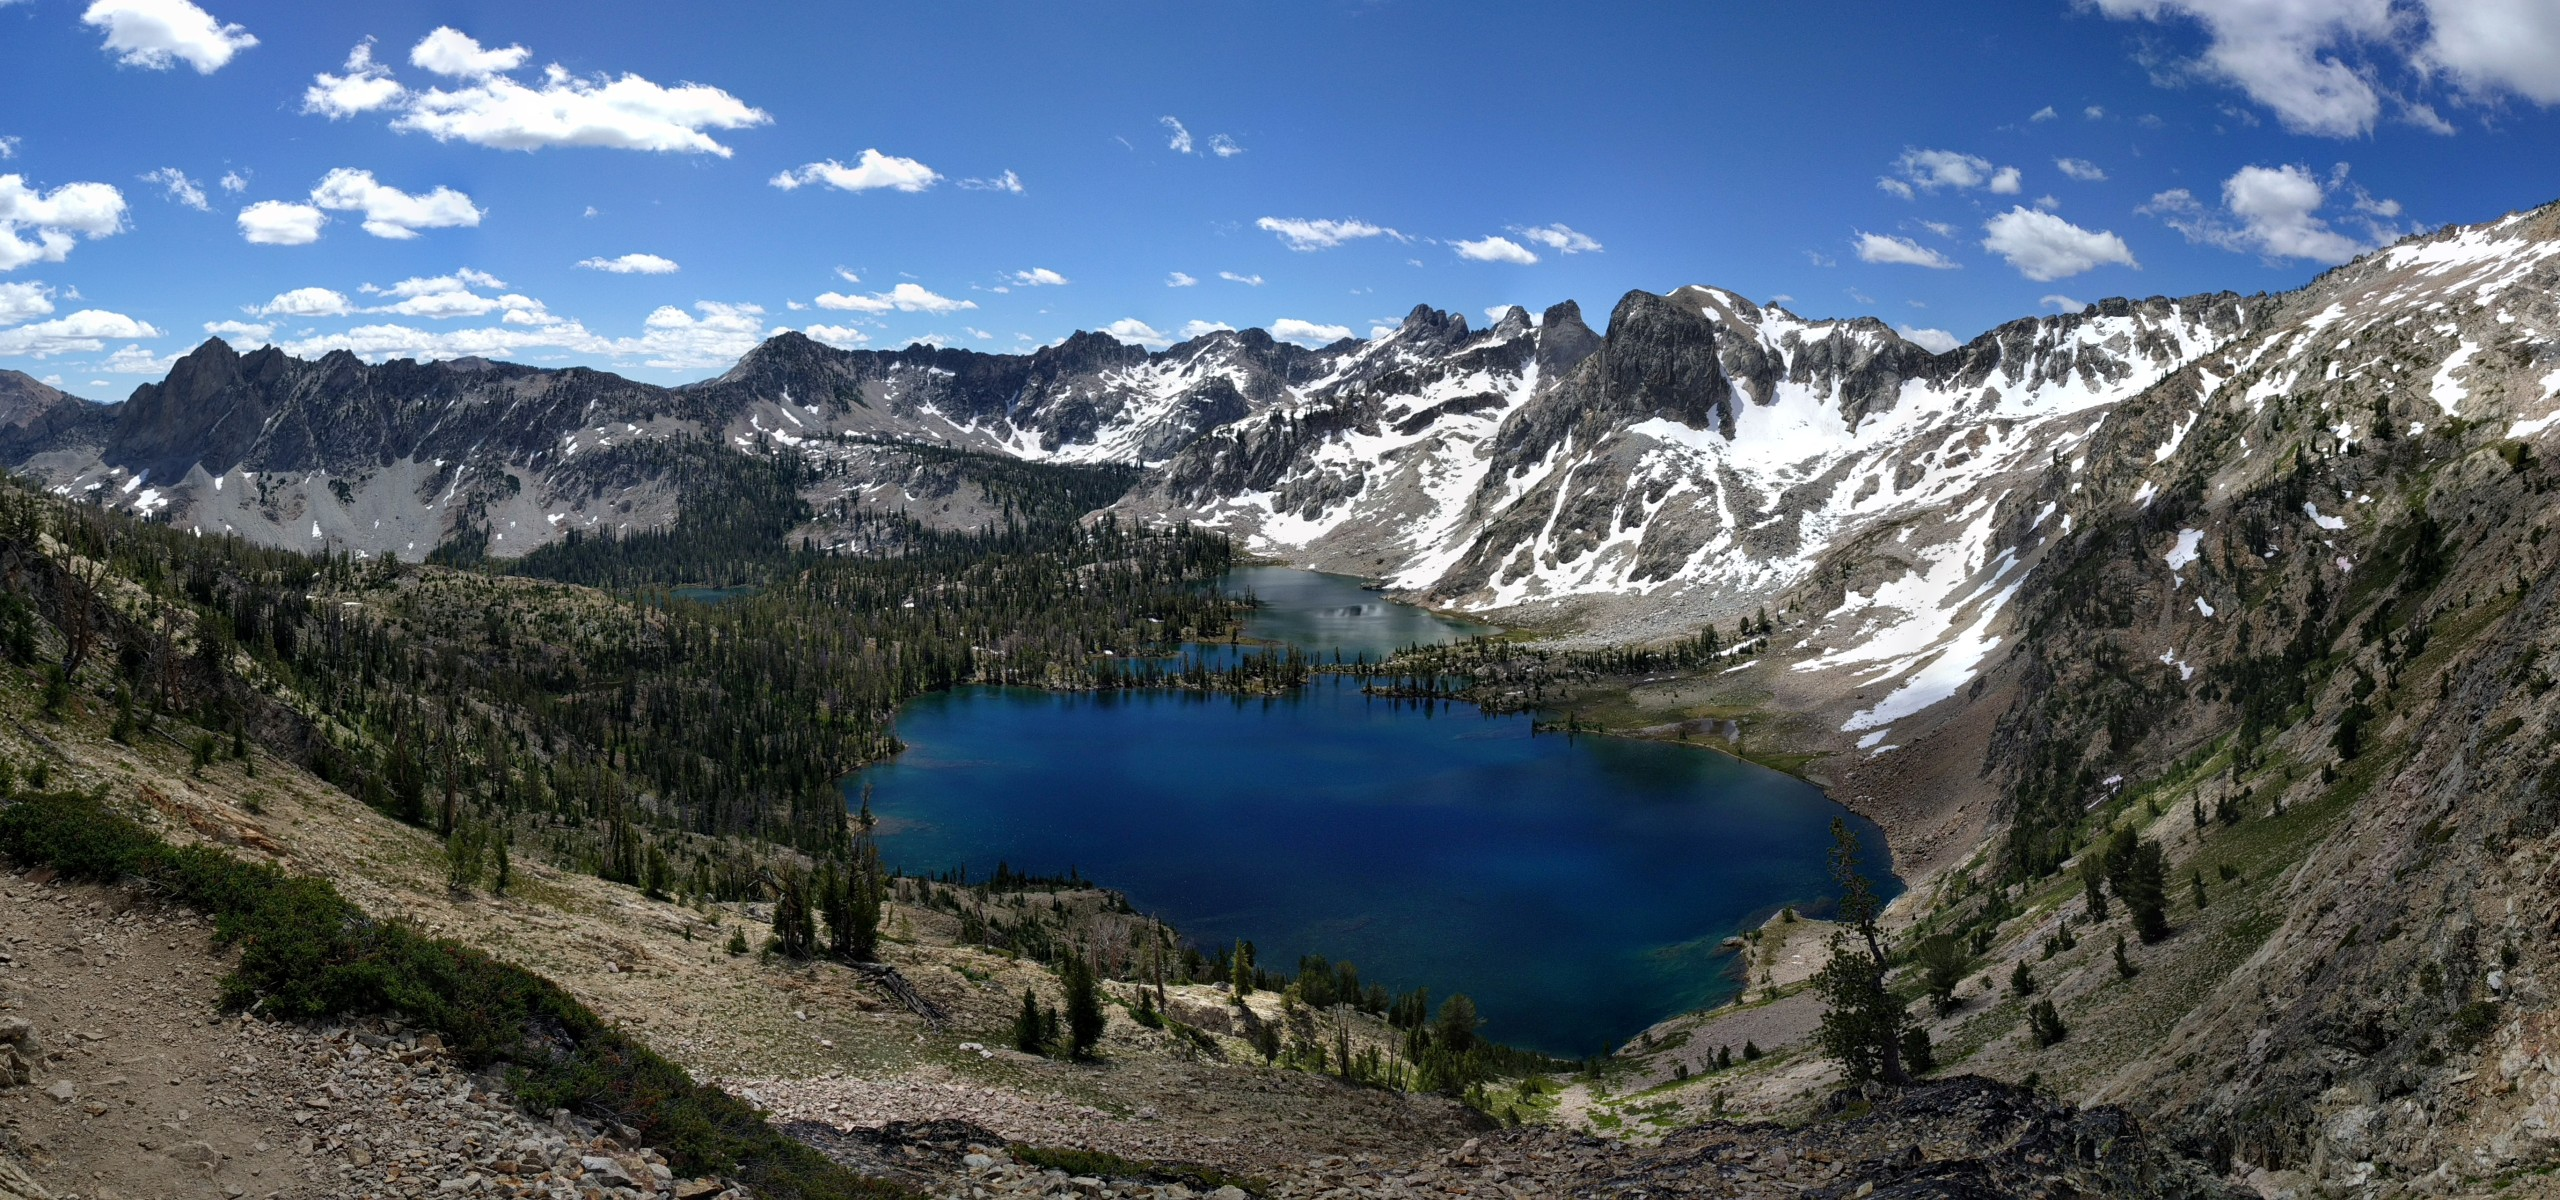 Twin Lakes Idaho Sawtooths Alice-Toxaway Lakes Loop backpacking hiking alpine